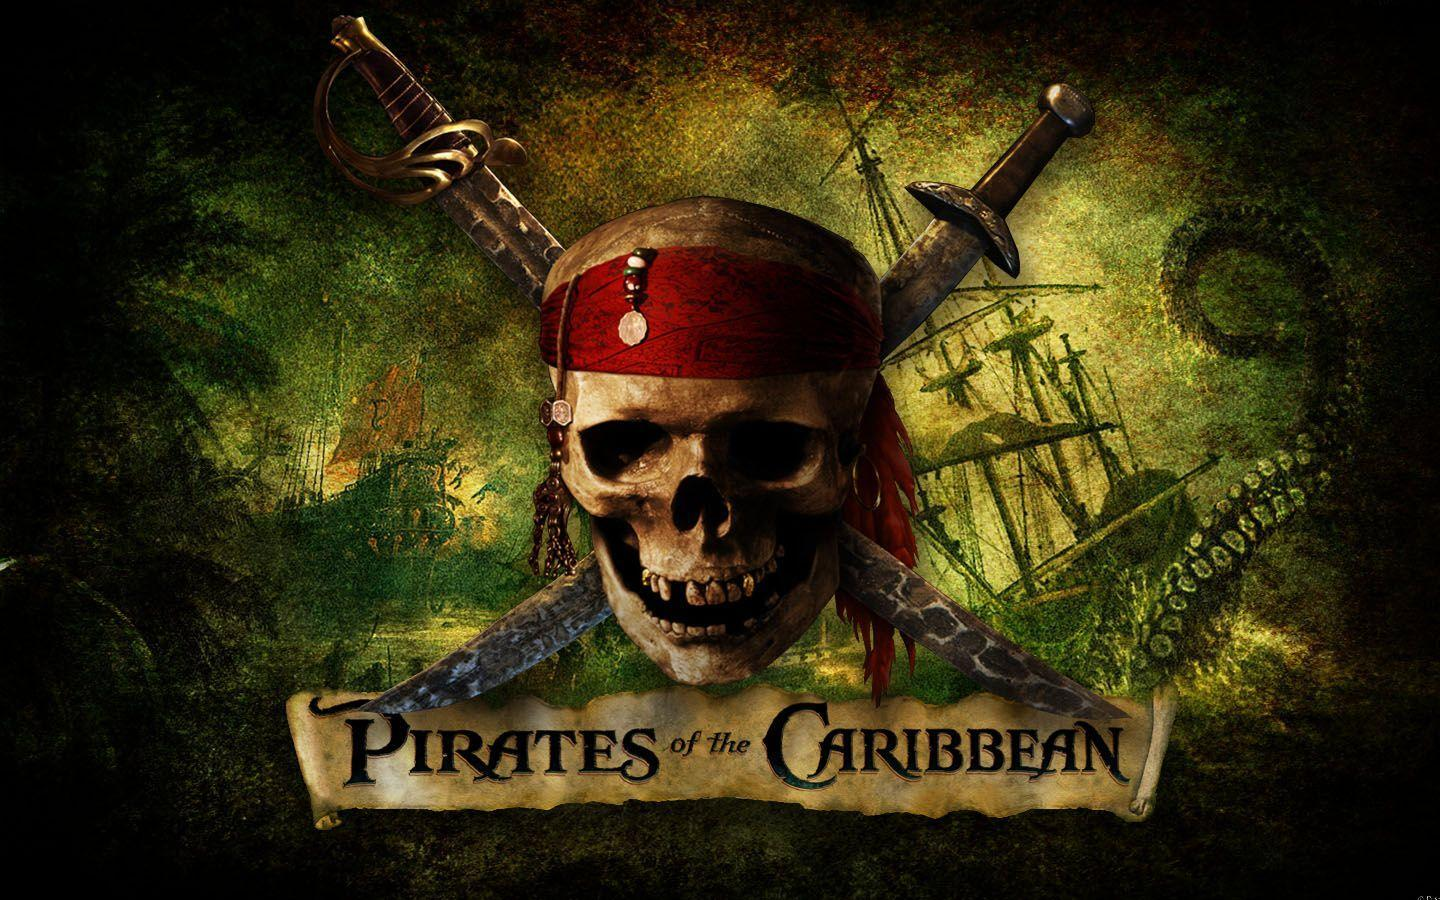 Pirates of The Caribbean HD Wallpaper Wallpele.com | Wallpaper in ...